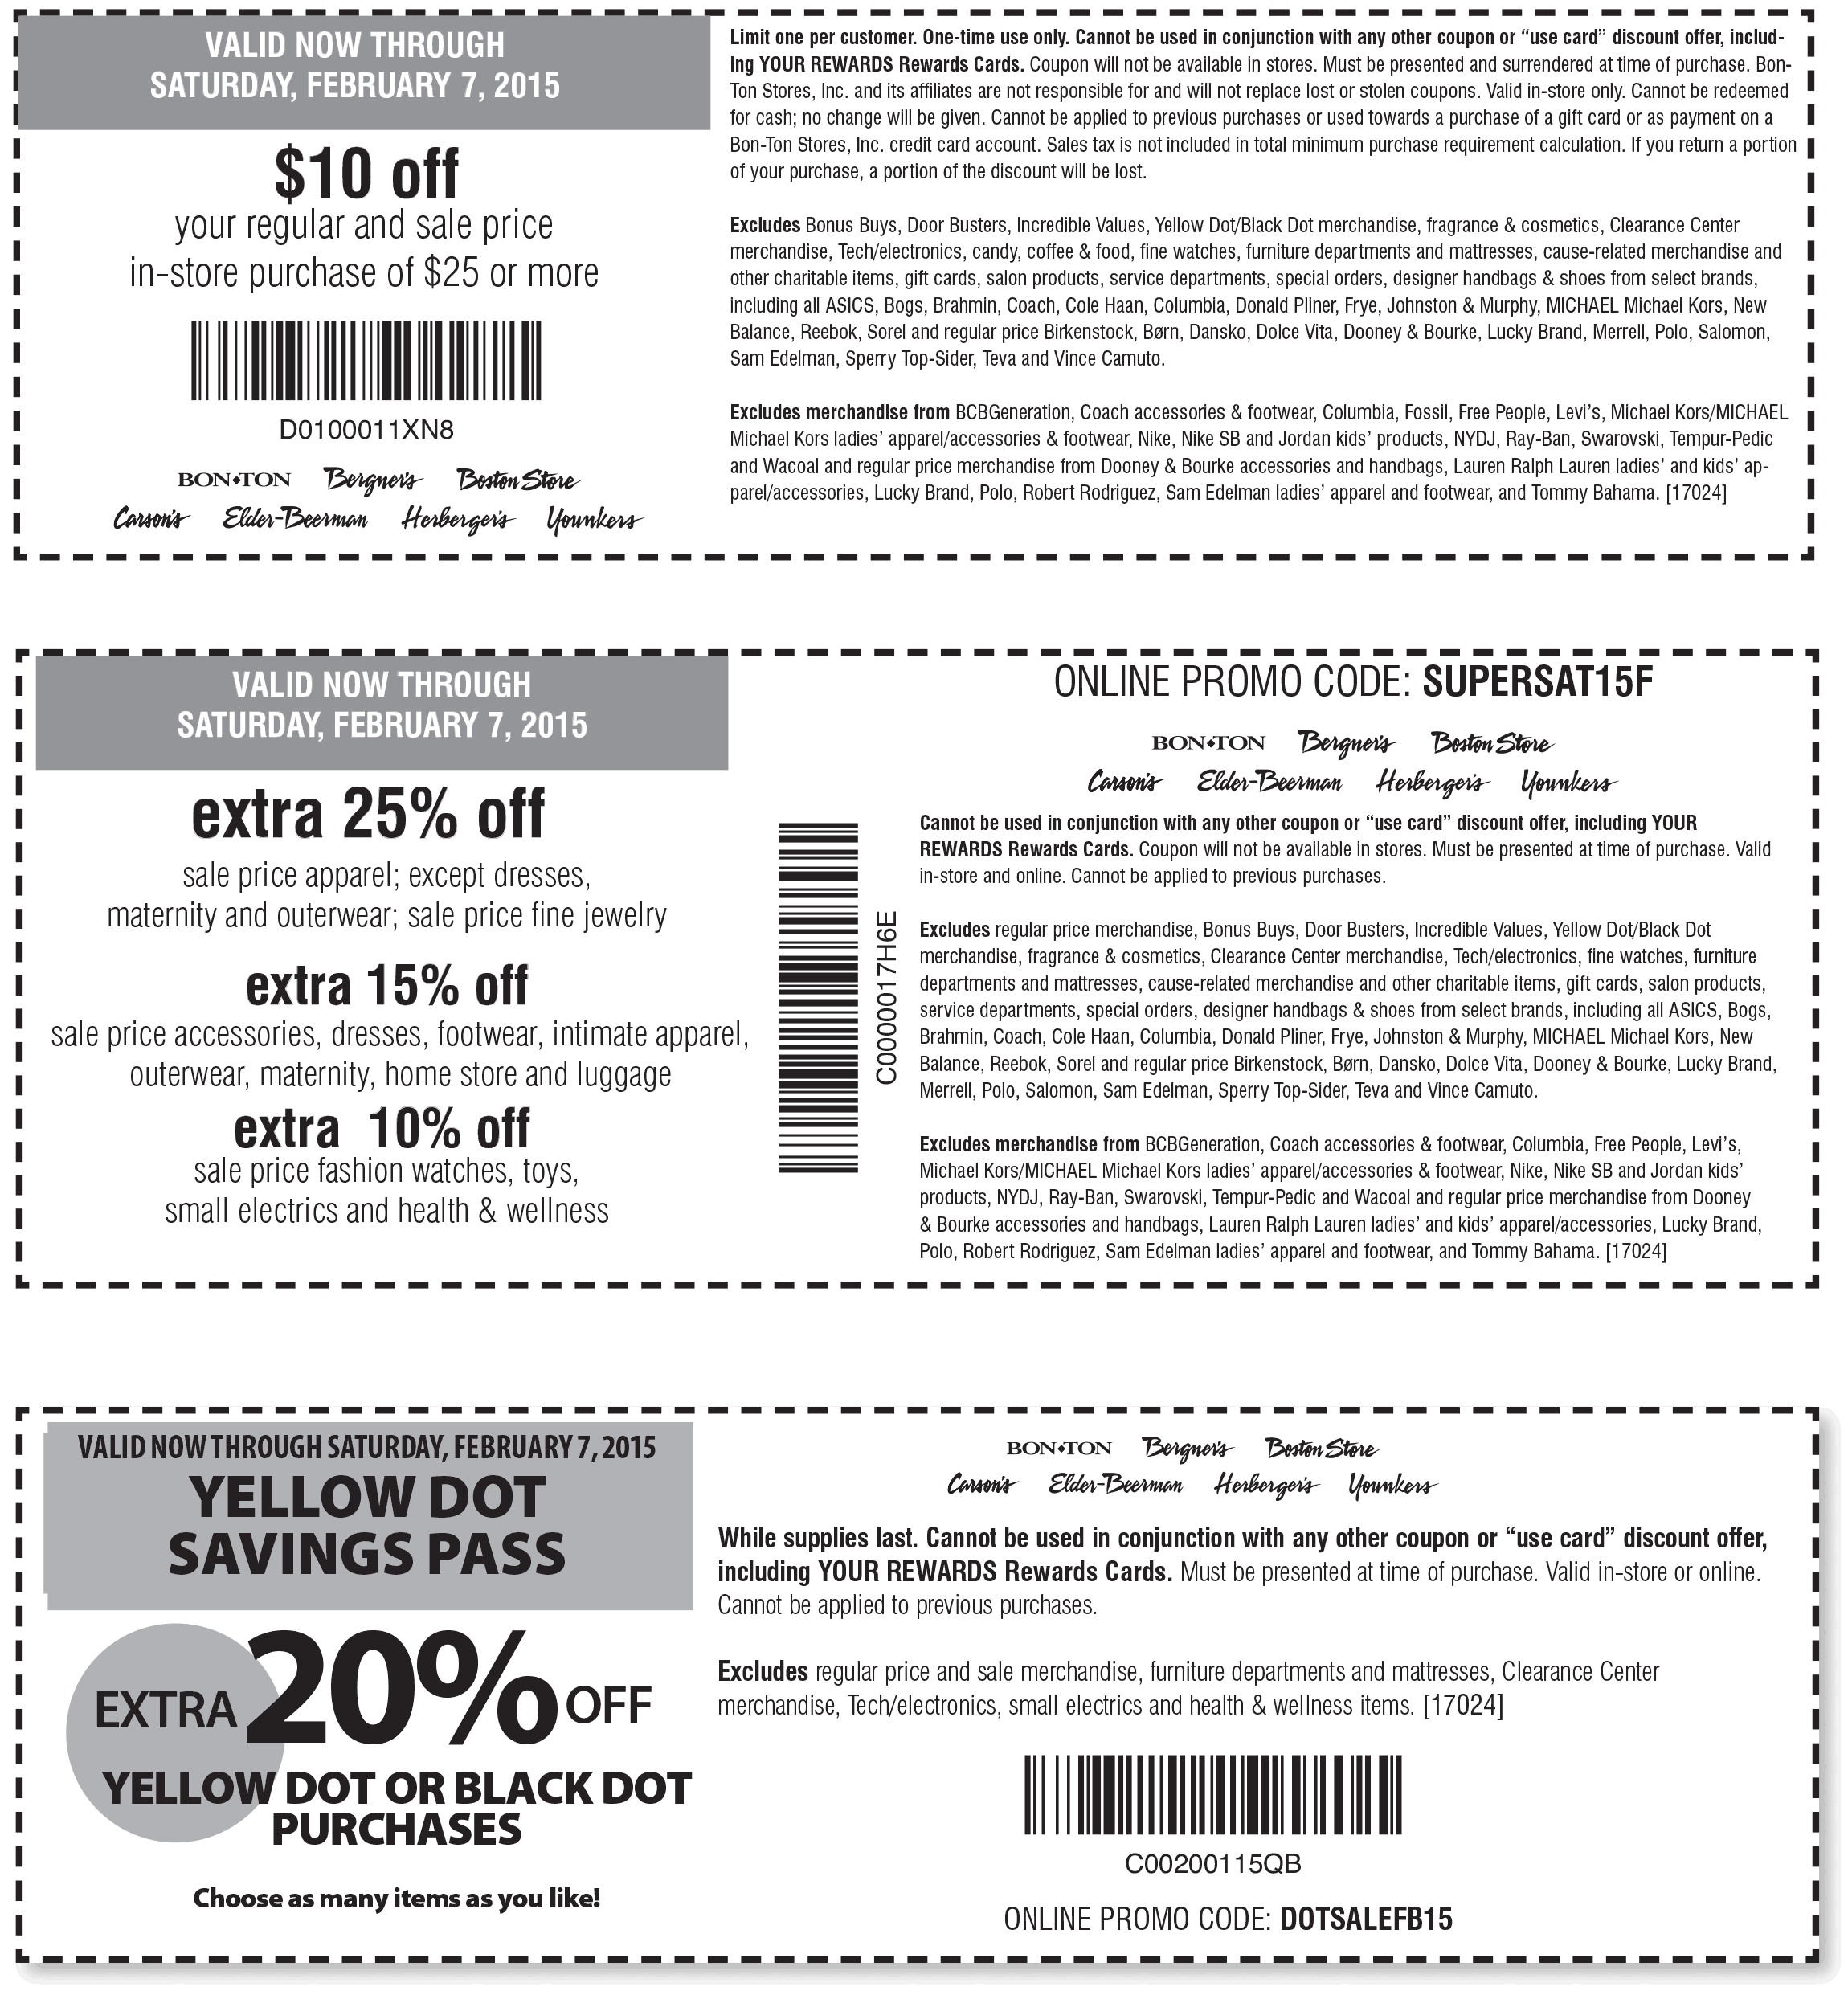 Carsons Coupon May 2018 Extra 25% off sale apparel & more at Carsons, Bon Ton & sister stores, or online via promo code SUPERSAT15F